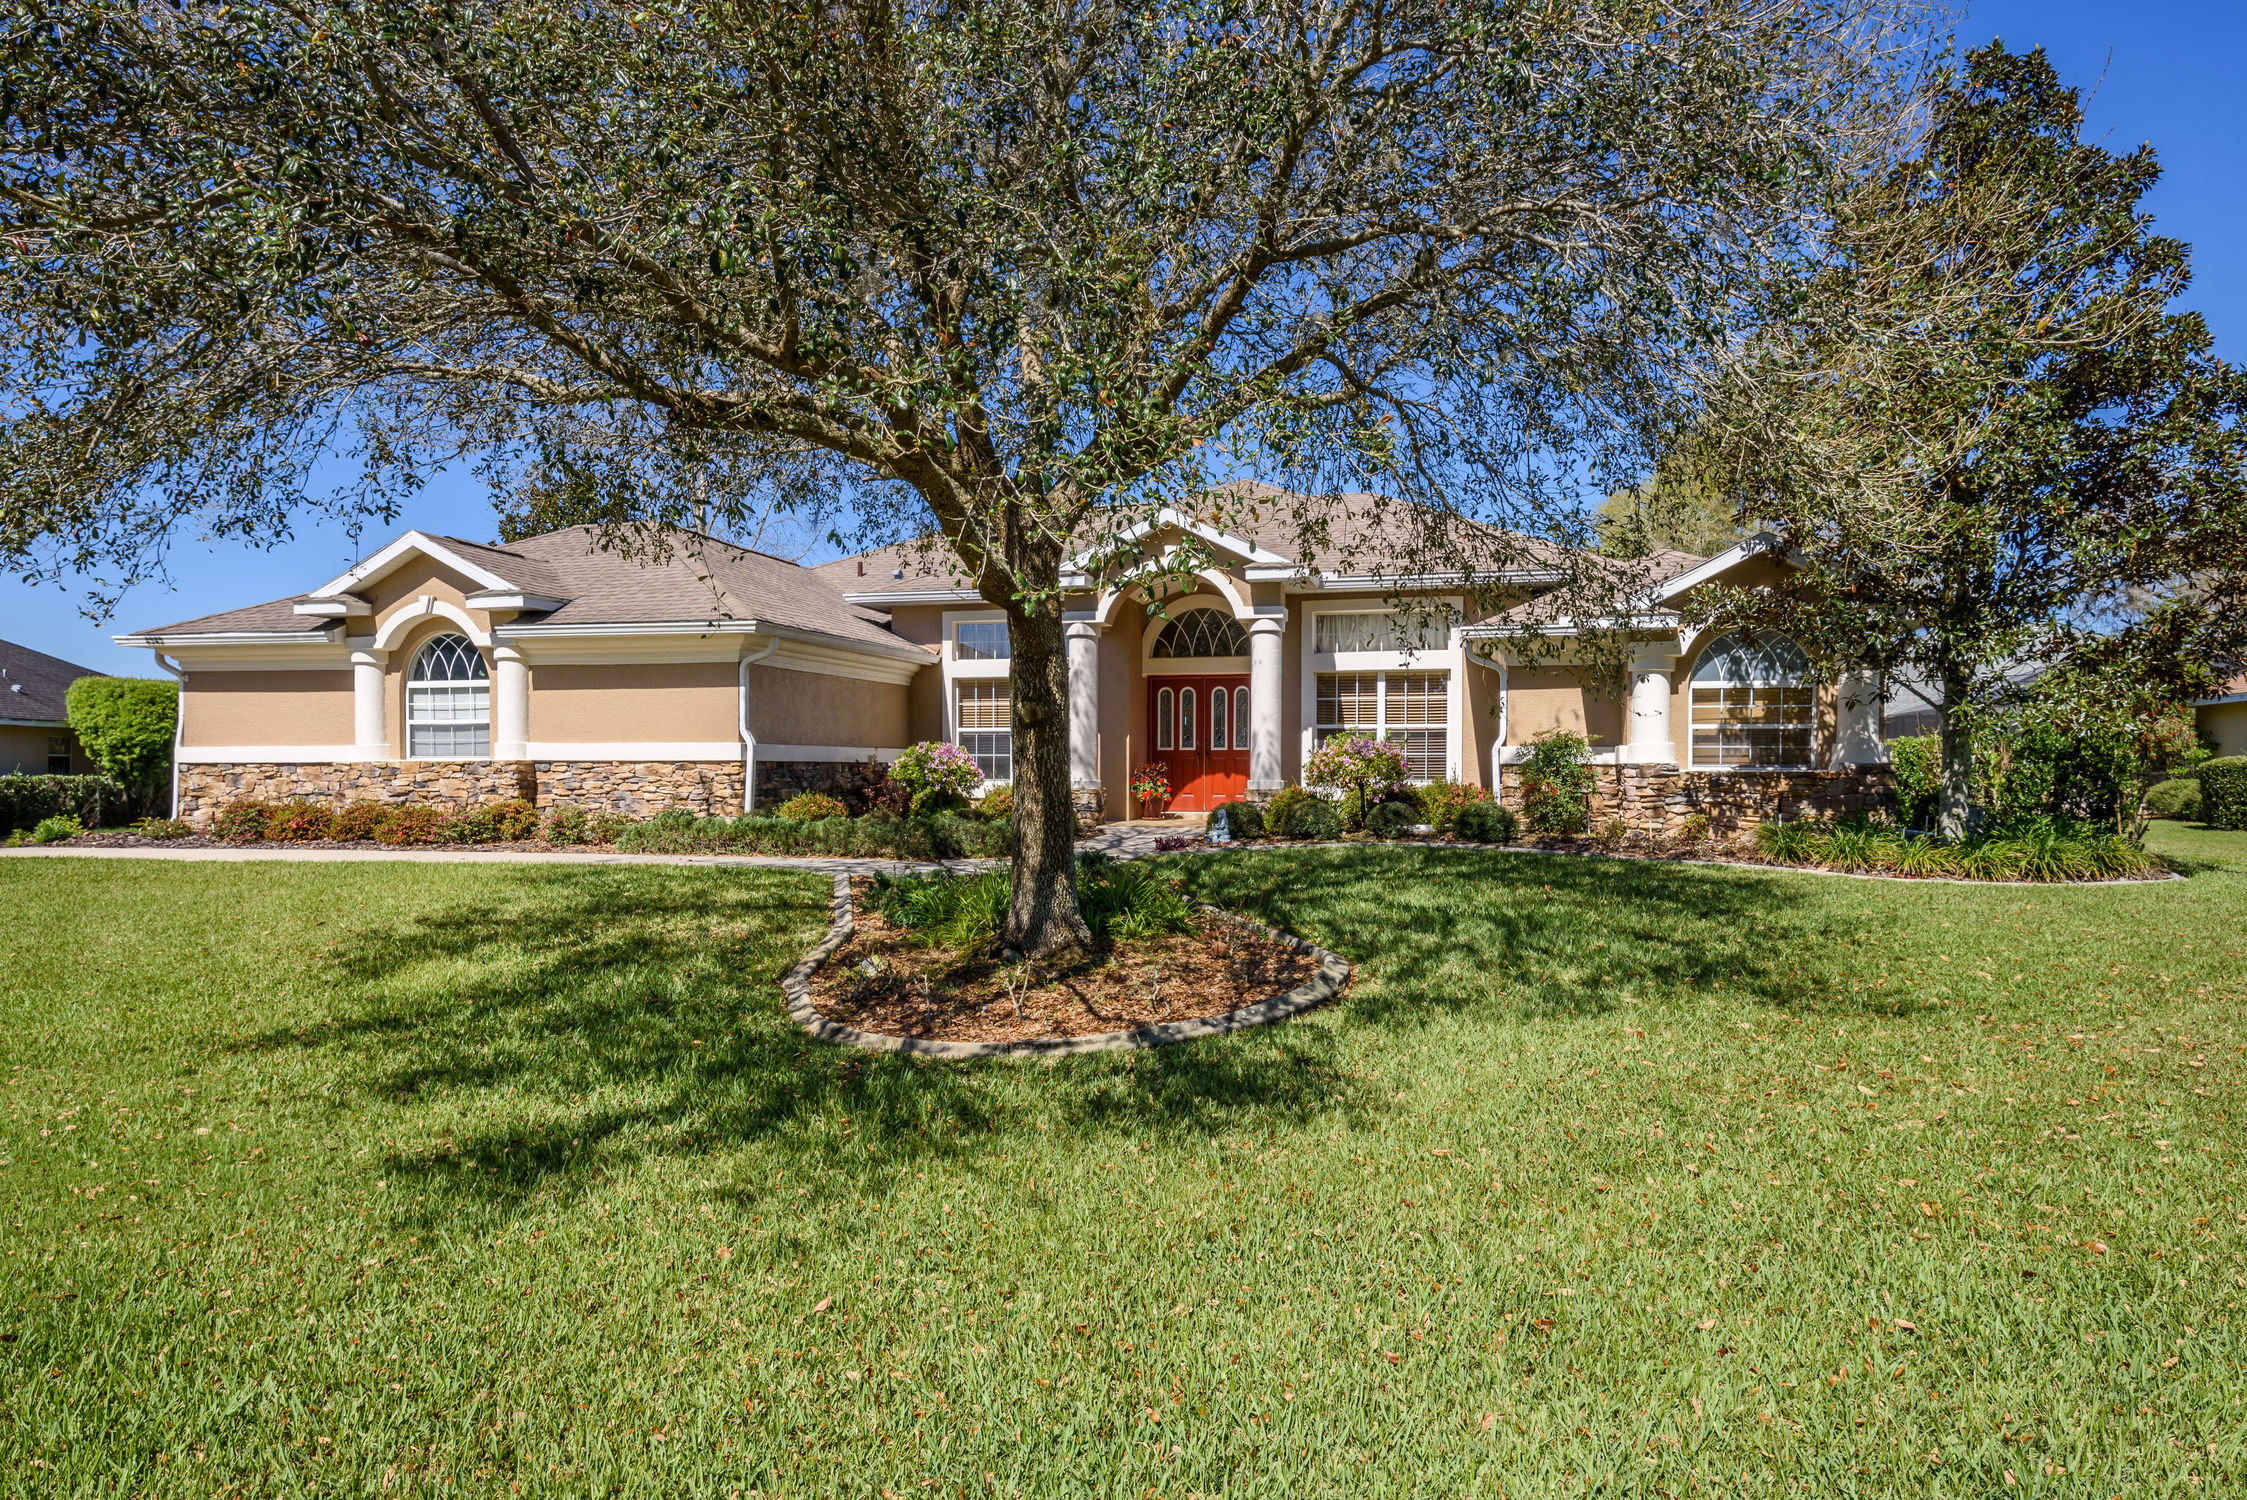 4545 NW 6th Circle, Ocala, FL 34475 - home for sale